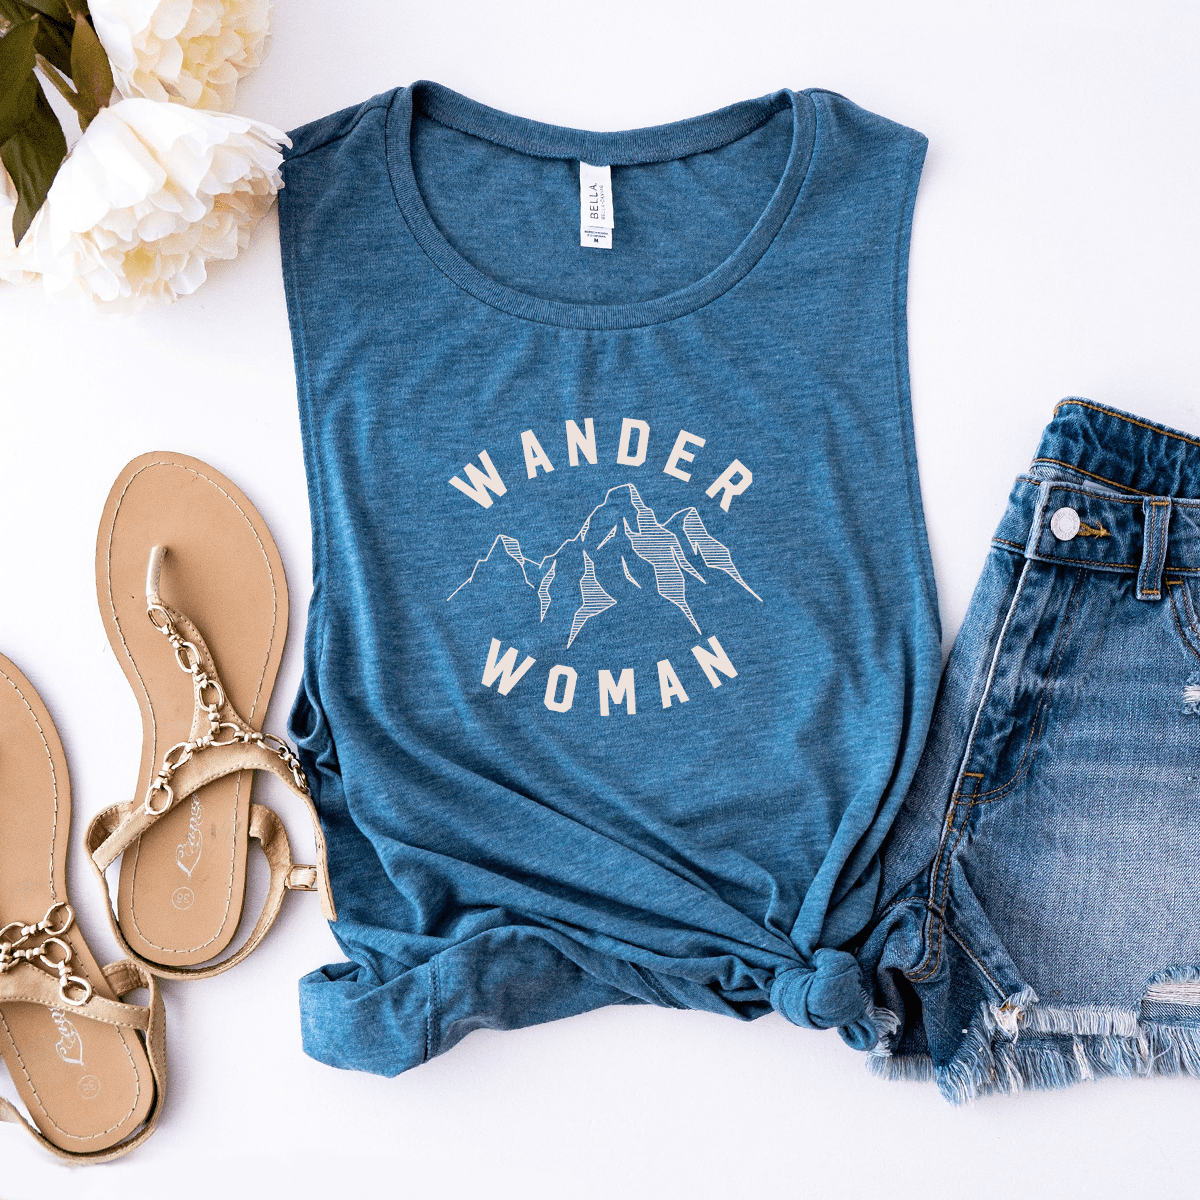 Wander Woman - Bella+Canvas Muscle Tank